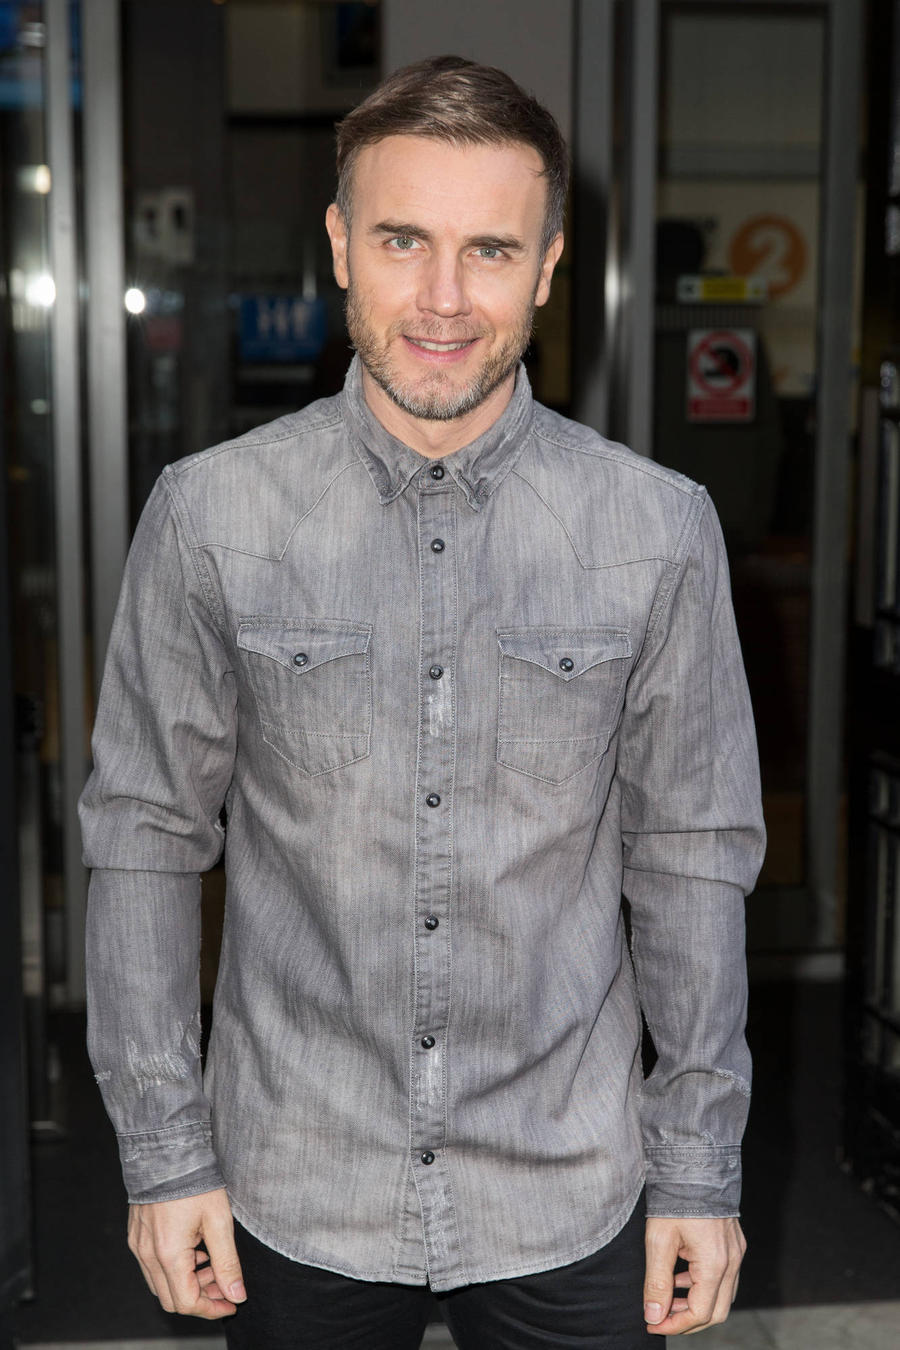 Gary Barlow Turns Birthday Singer